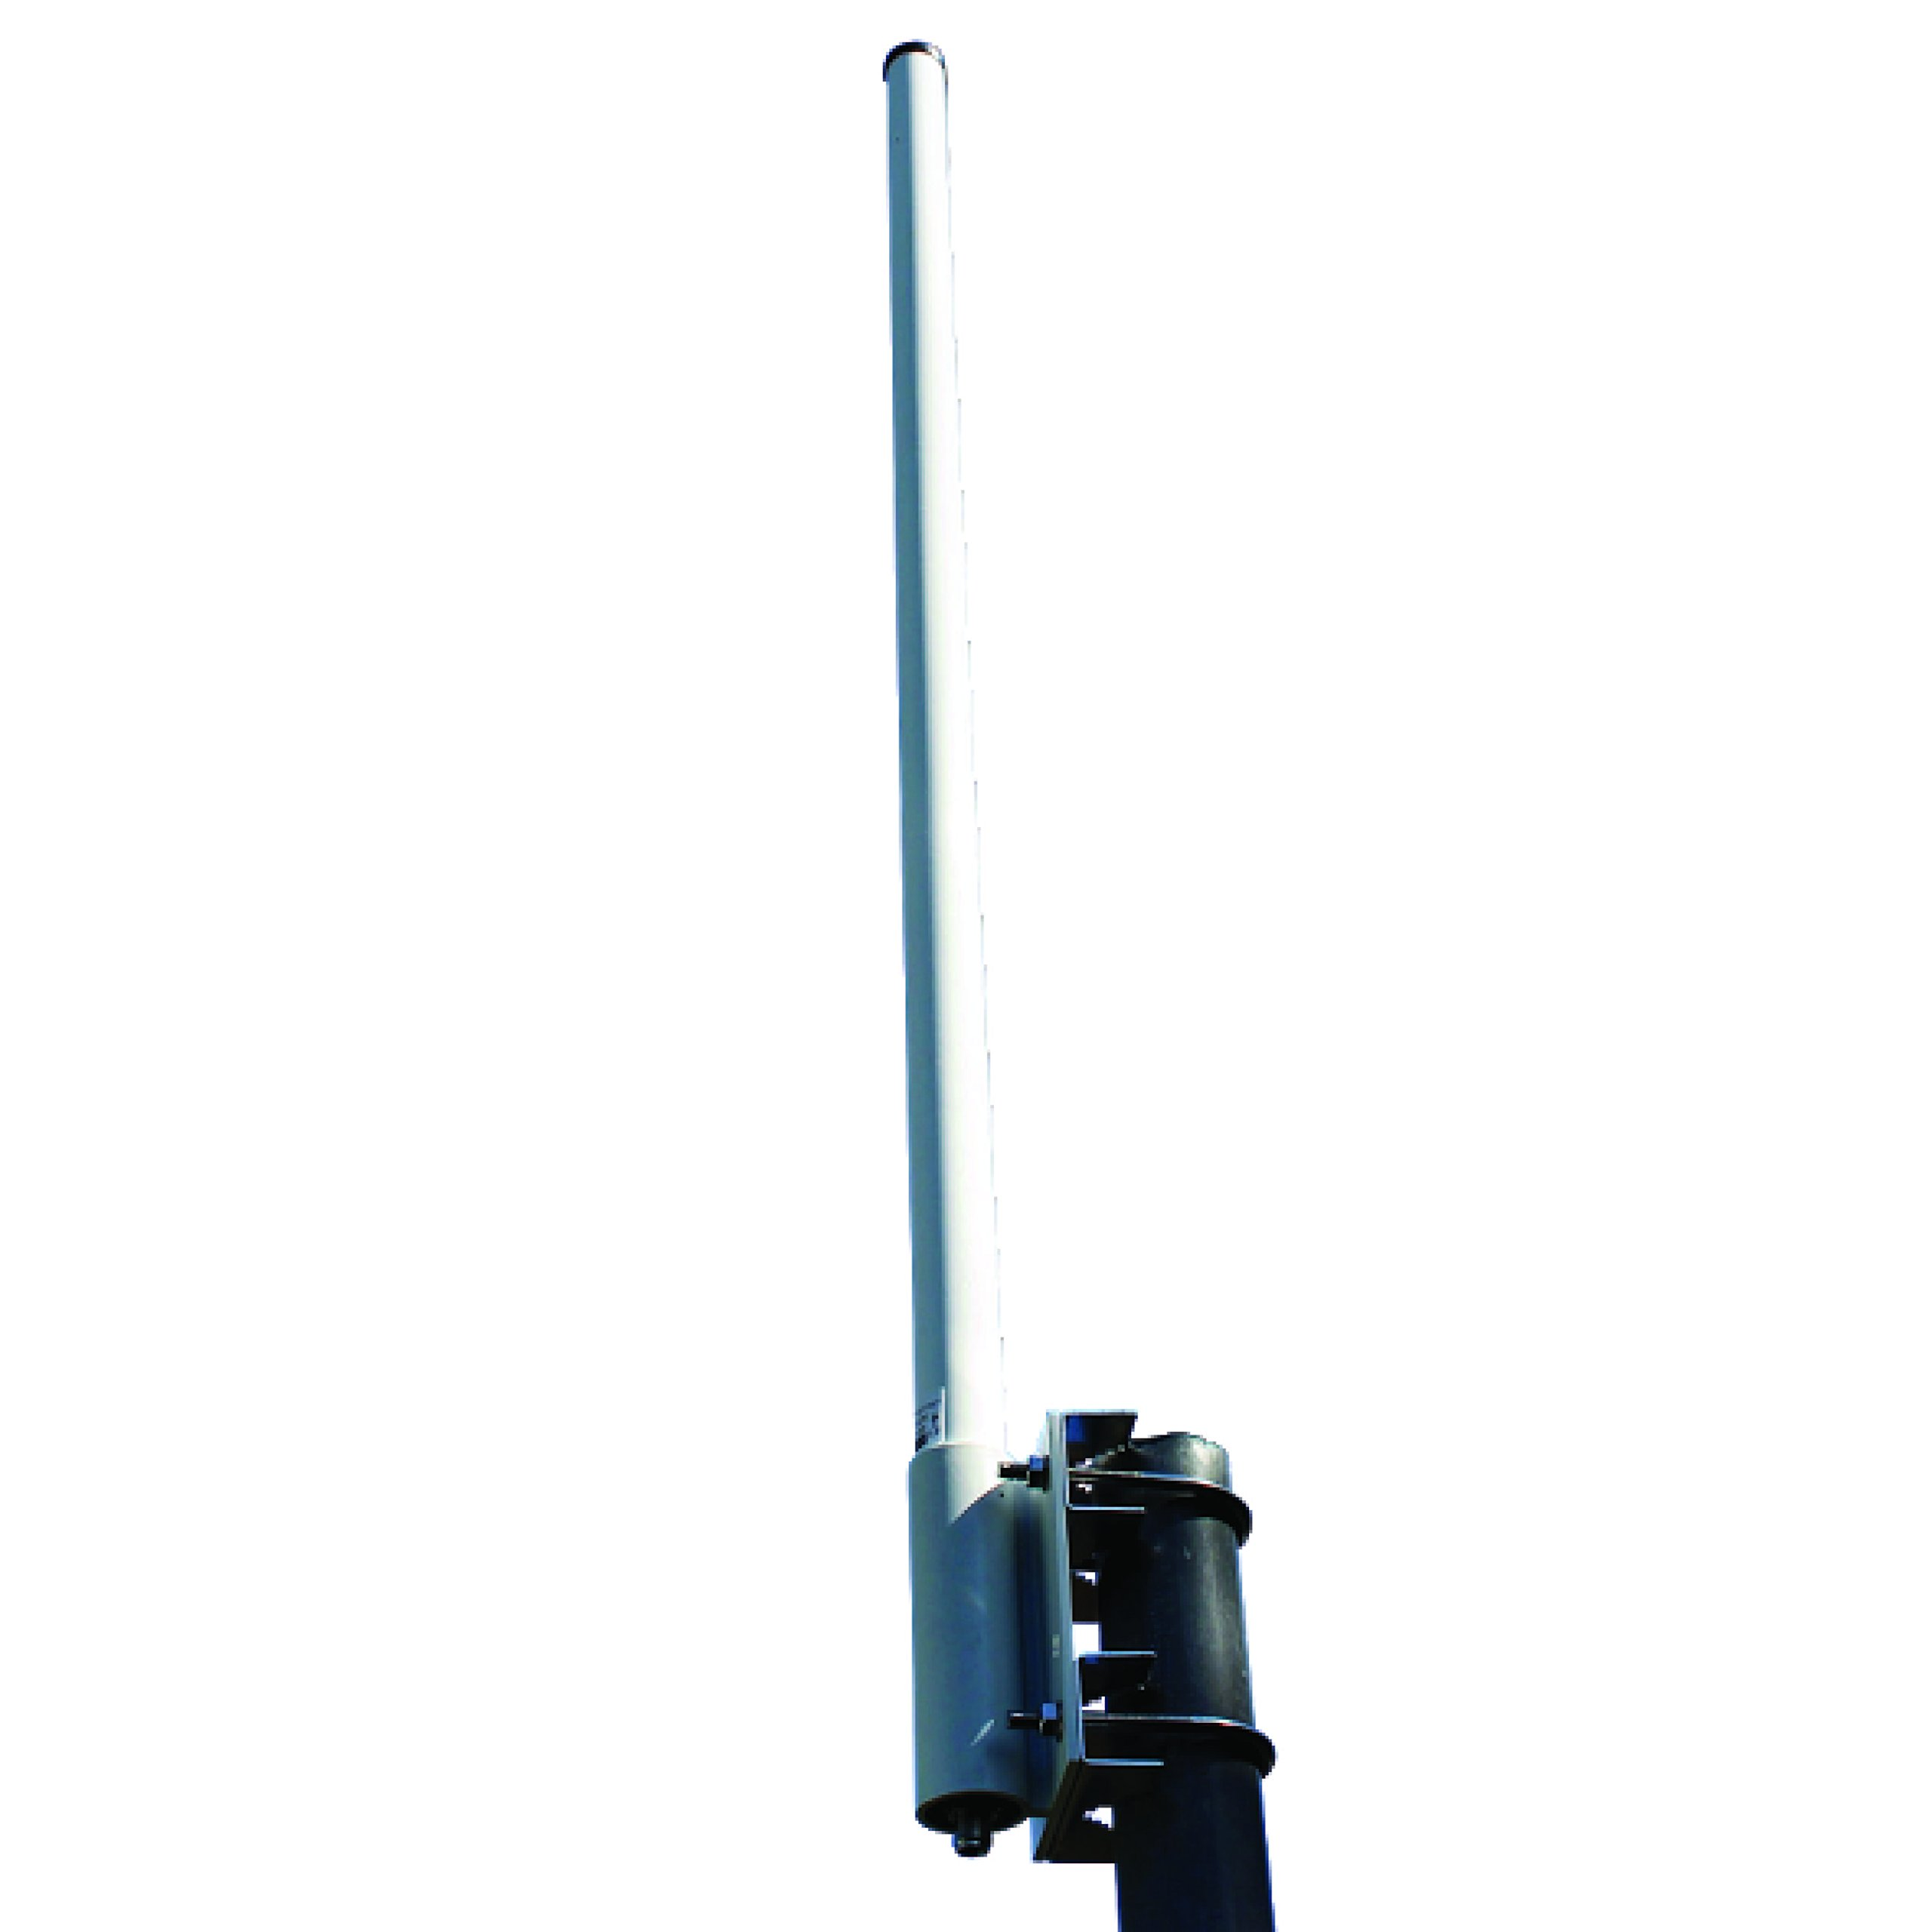 Antenna World OM2415HD 15 dBi Omni-Directional Wi-Fi Antenna Professional Grade